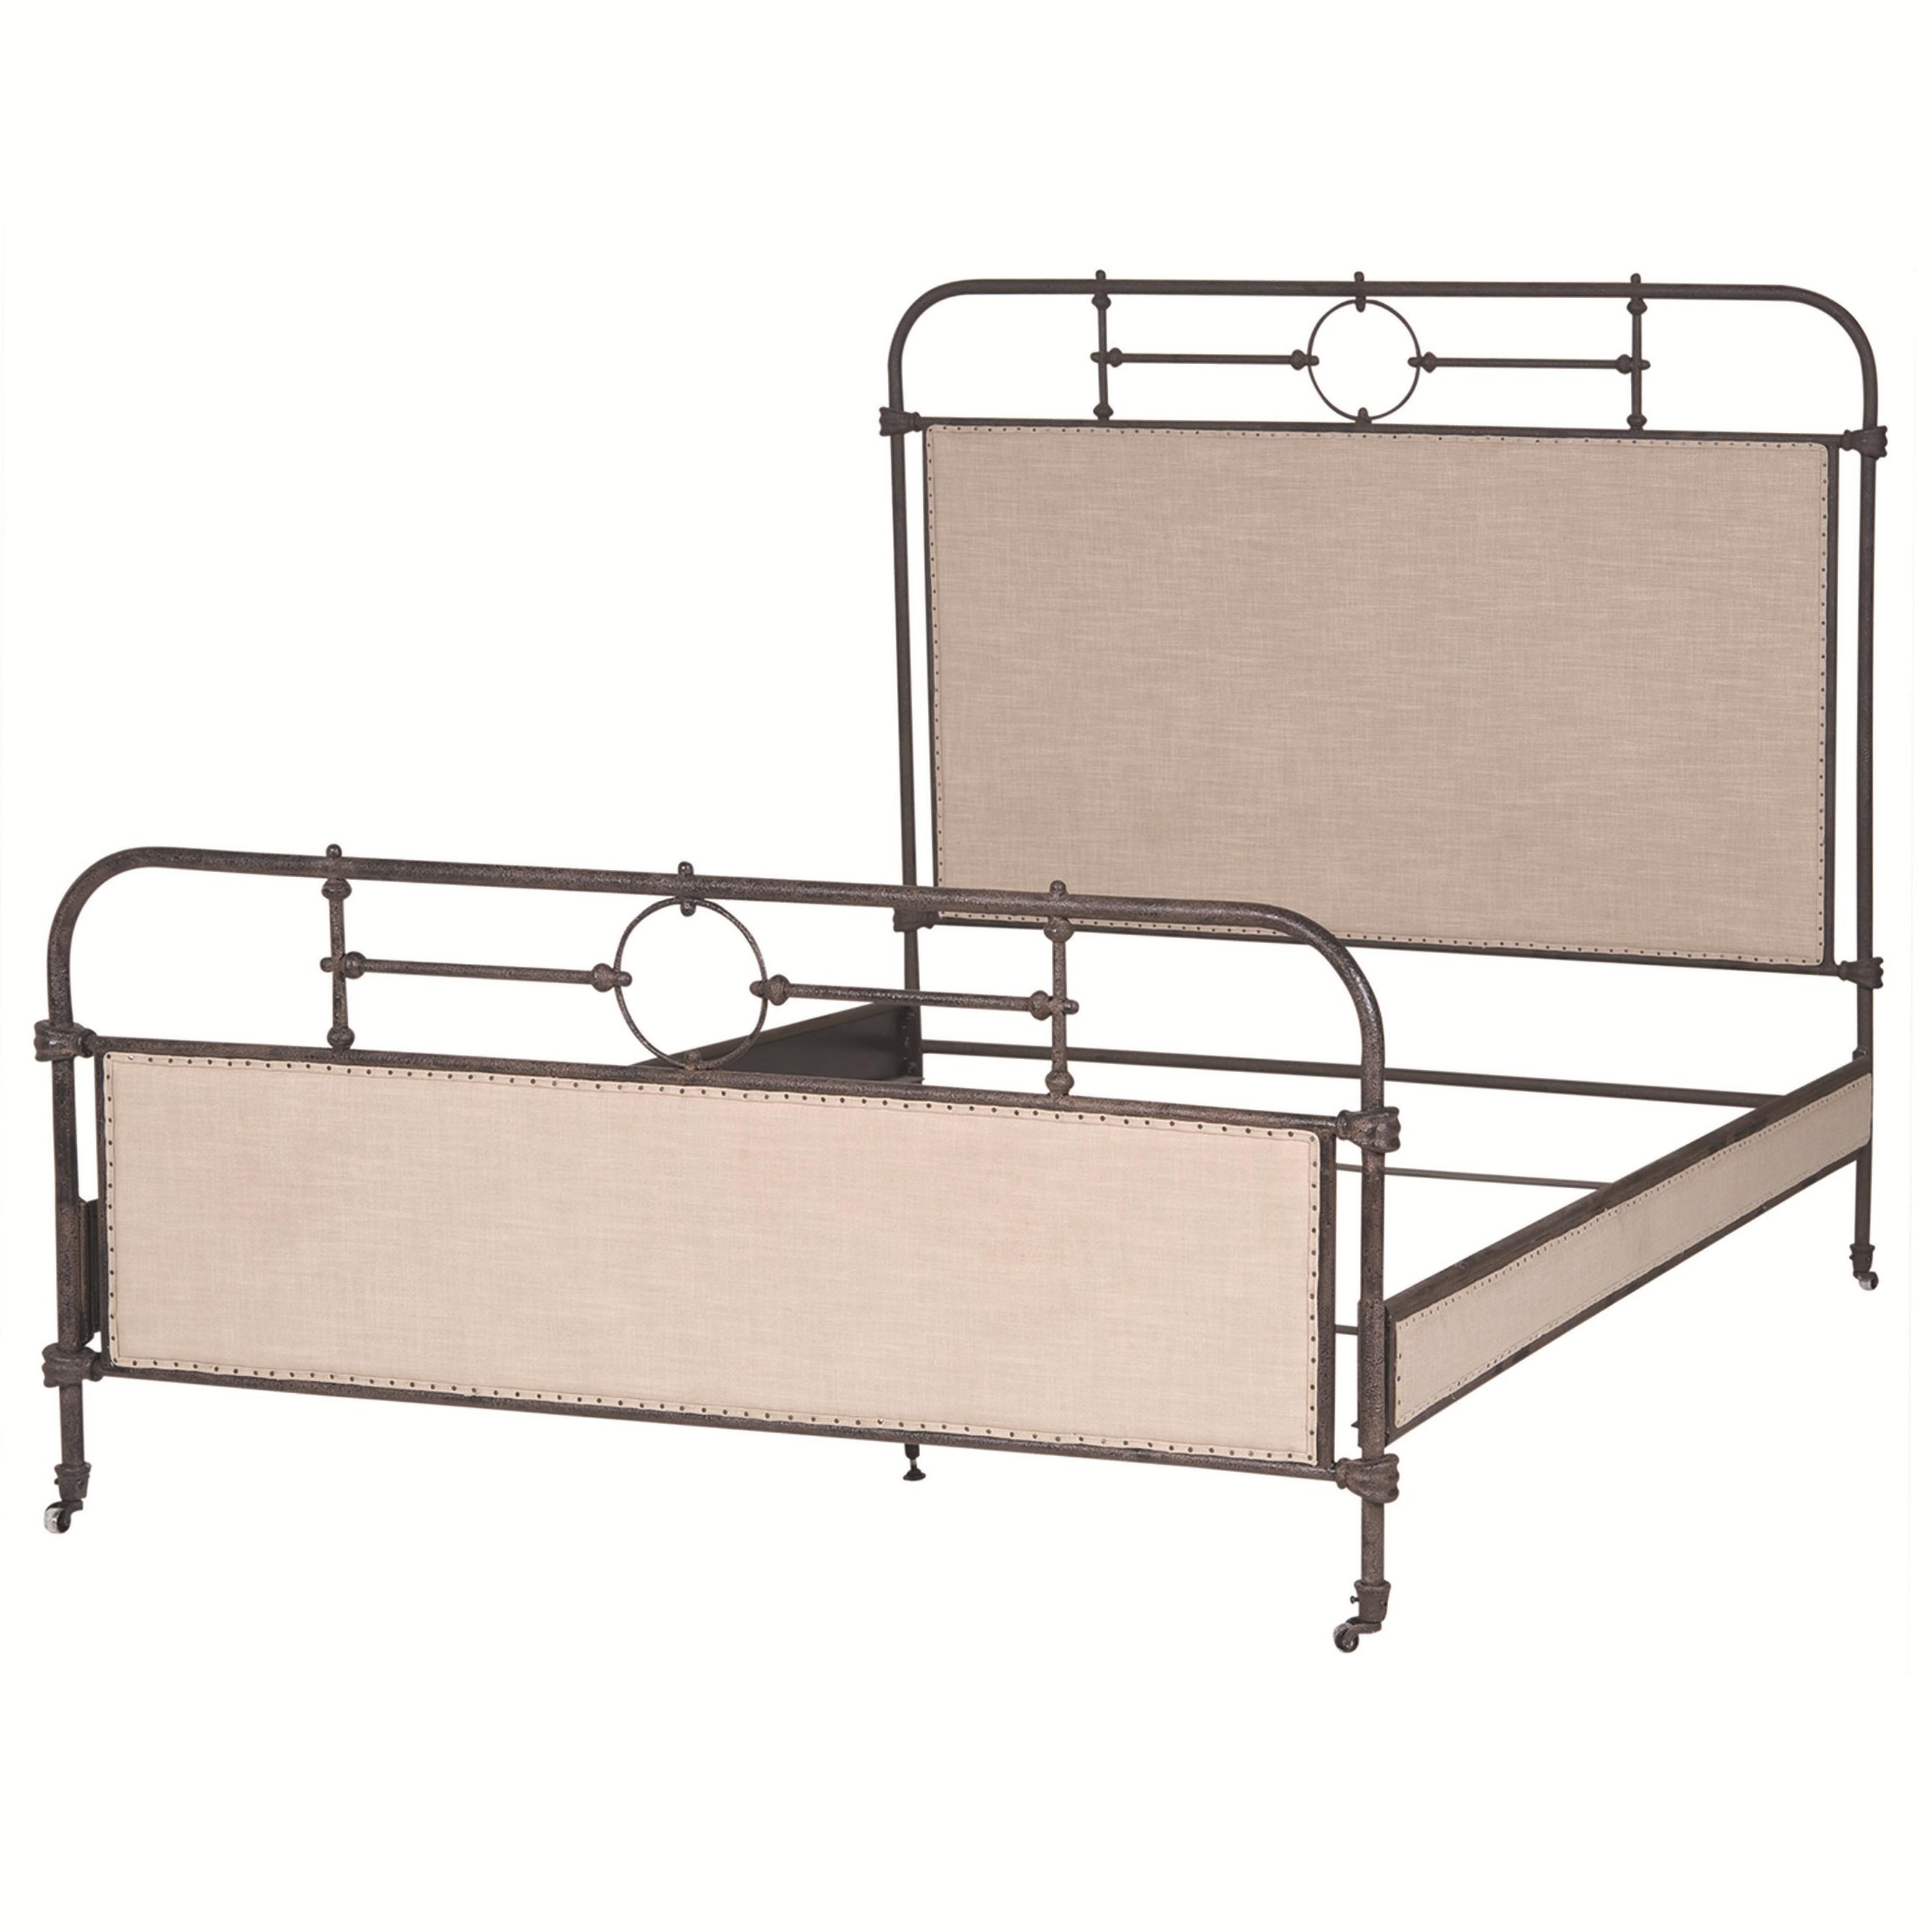 Four Hands Irondale Berkley Metal King Bed - Item Number: CIRD-29KD2-B2